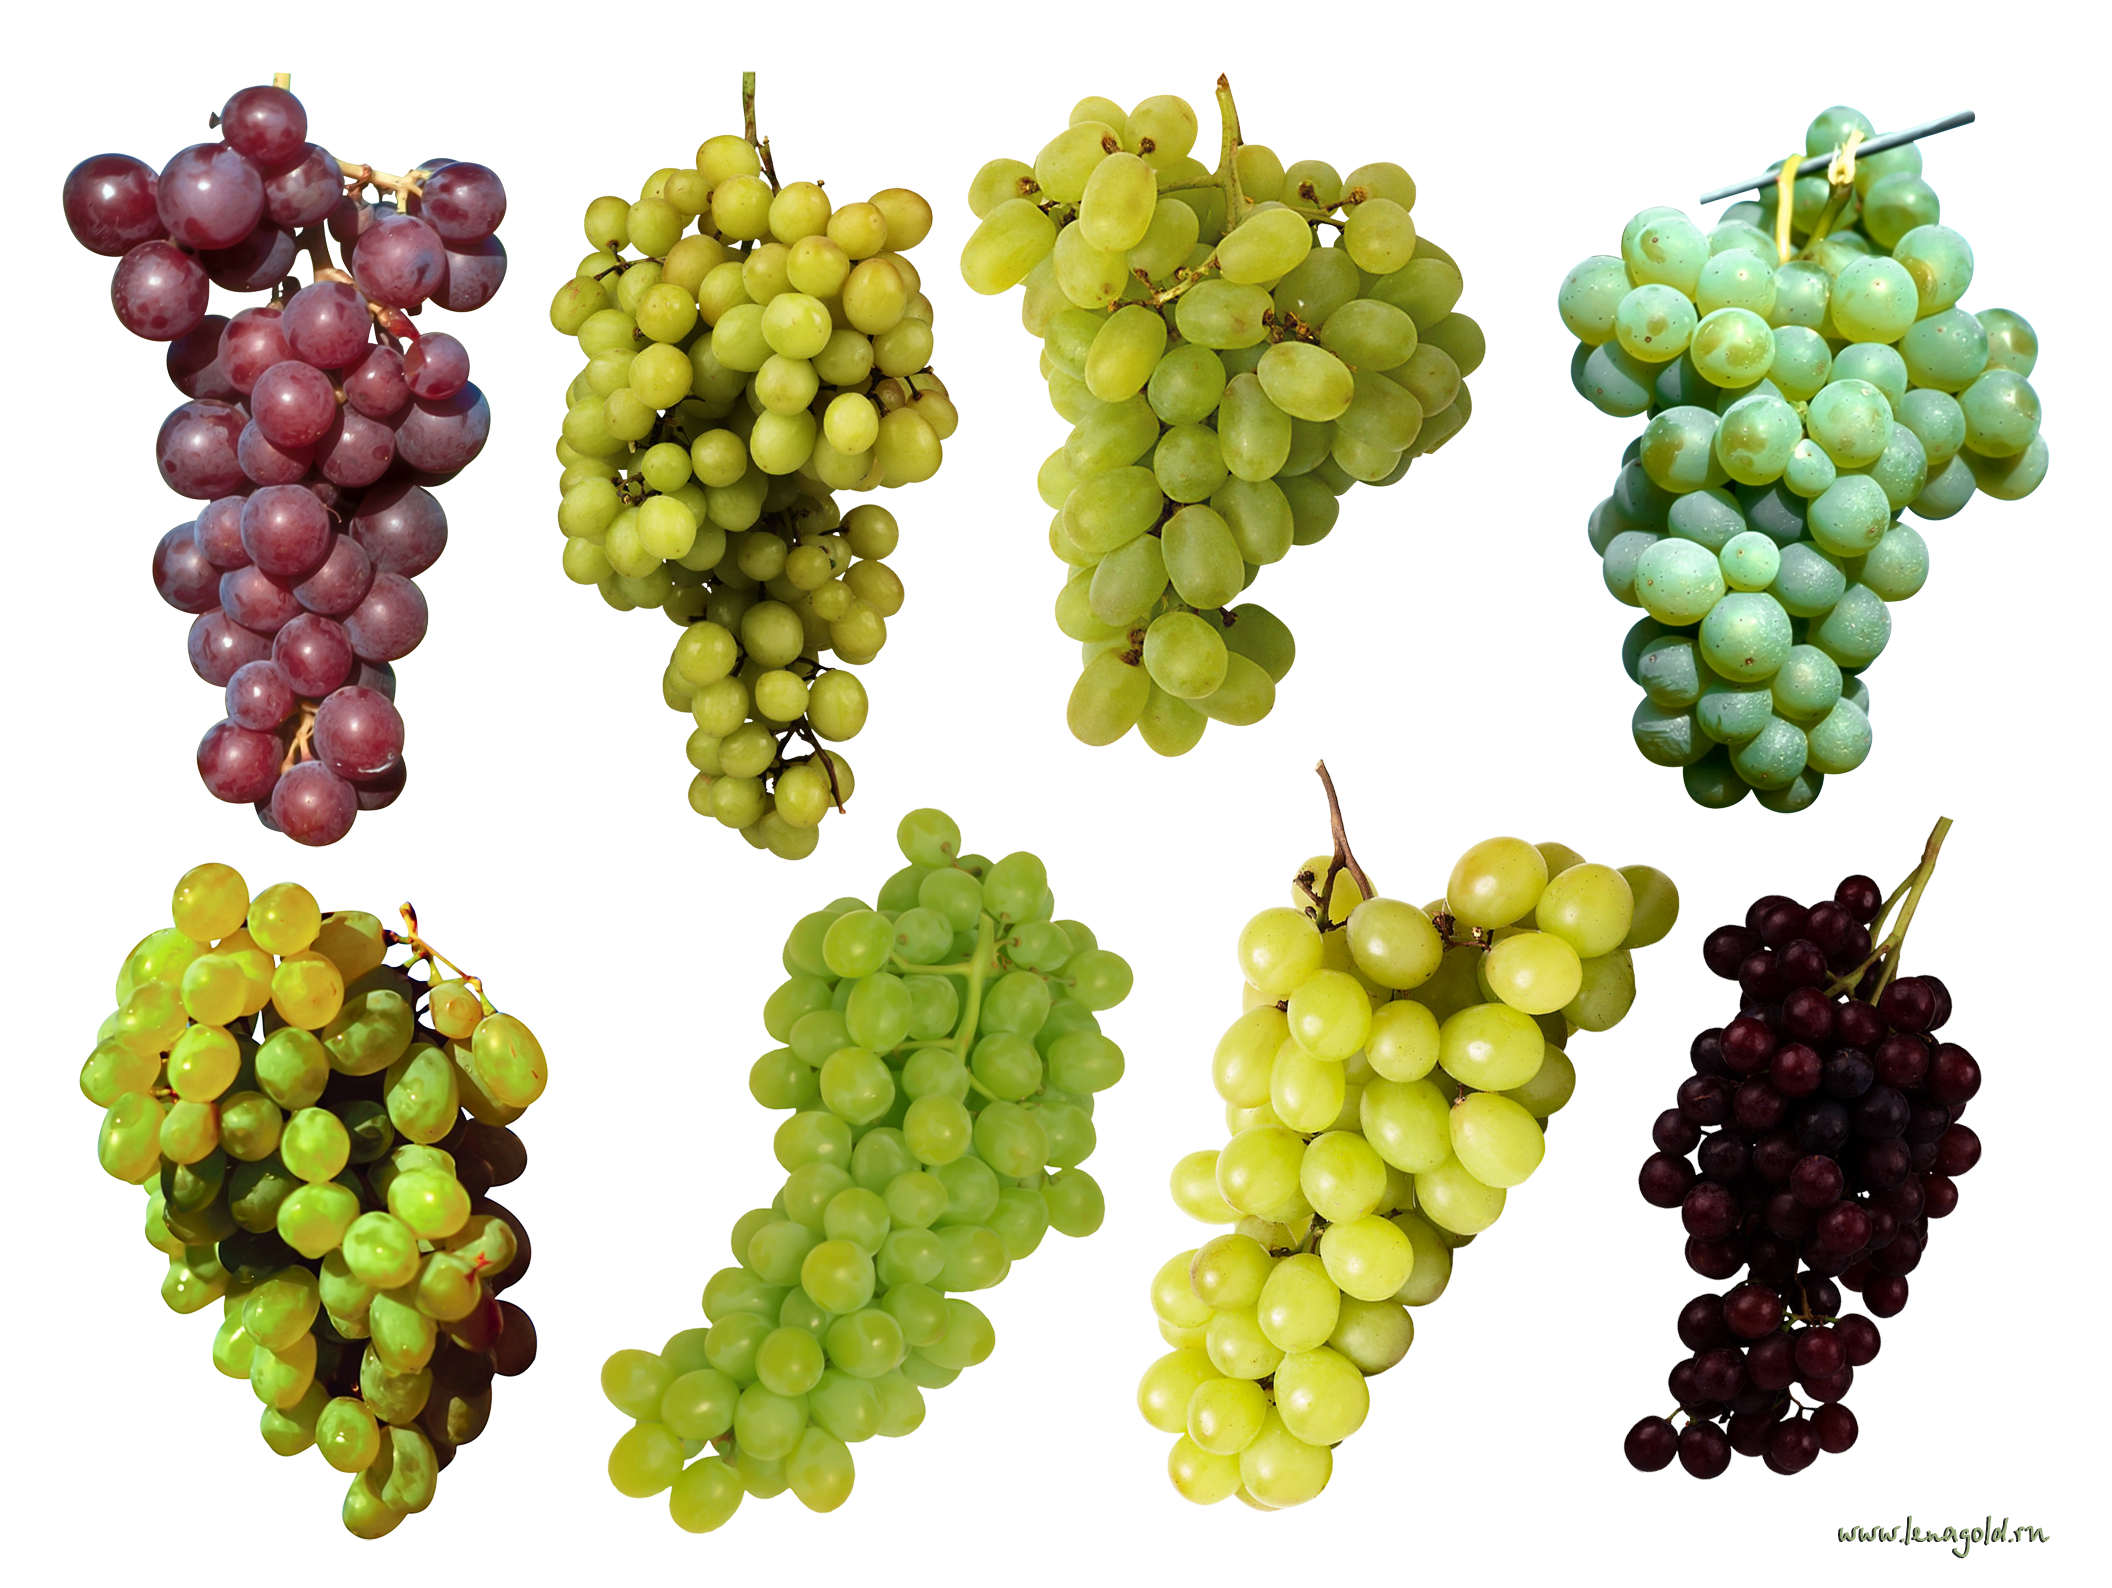 Png images download free. Grape image picture